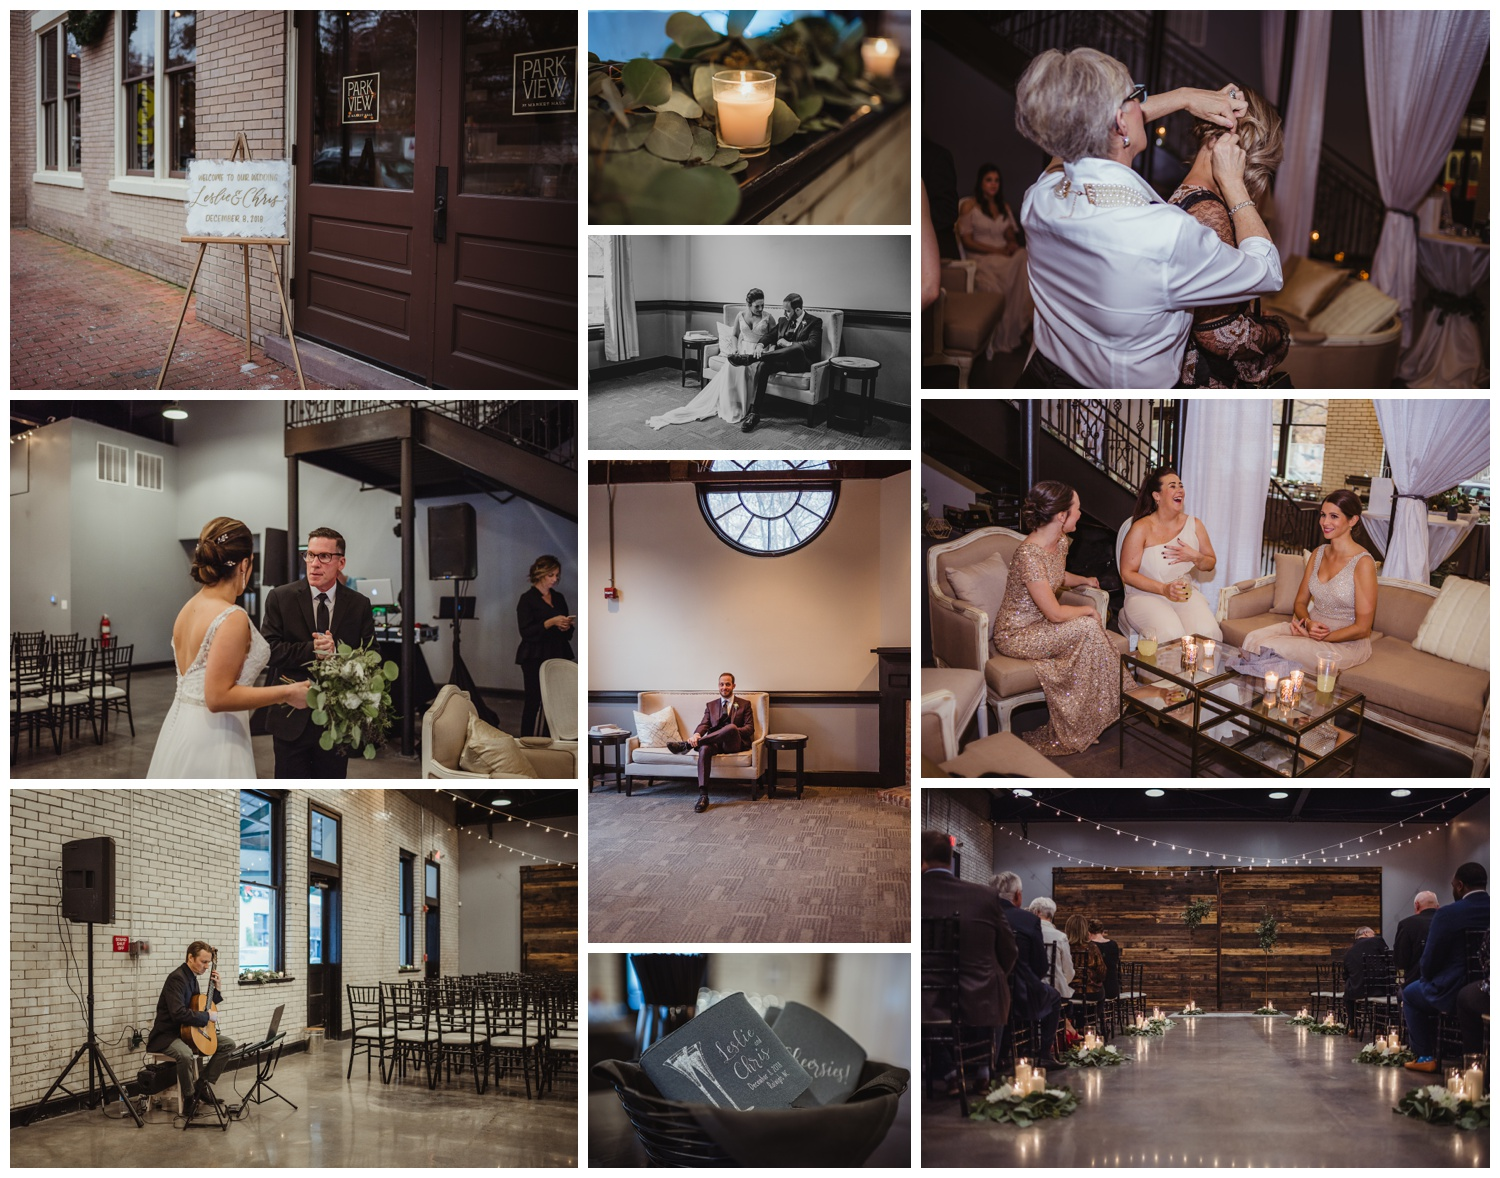 The bride and groom relax inside with family before their wedding ceremony in downtown Raleigh, photos by Rose Trail Images.